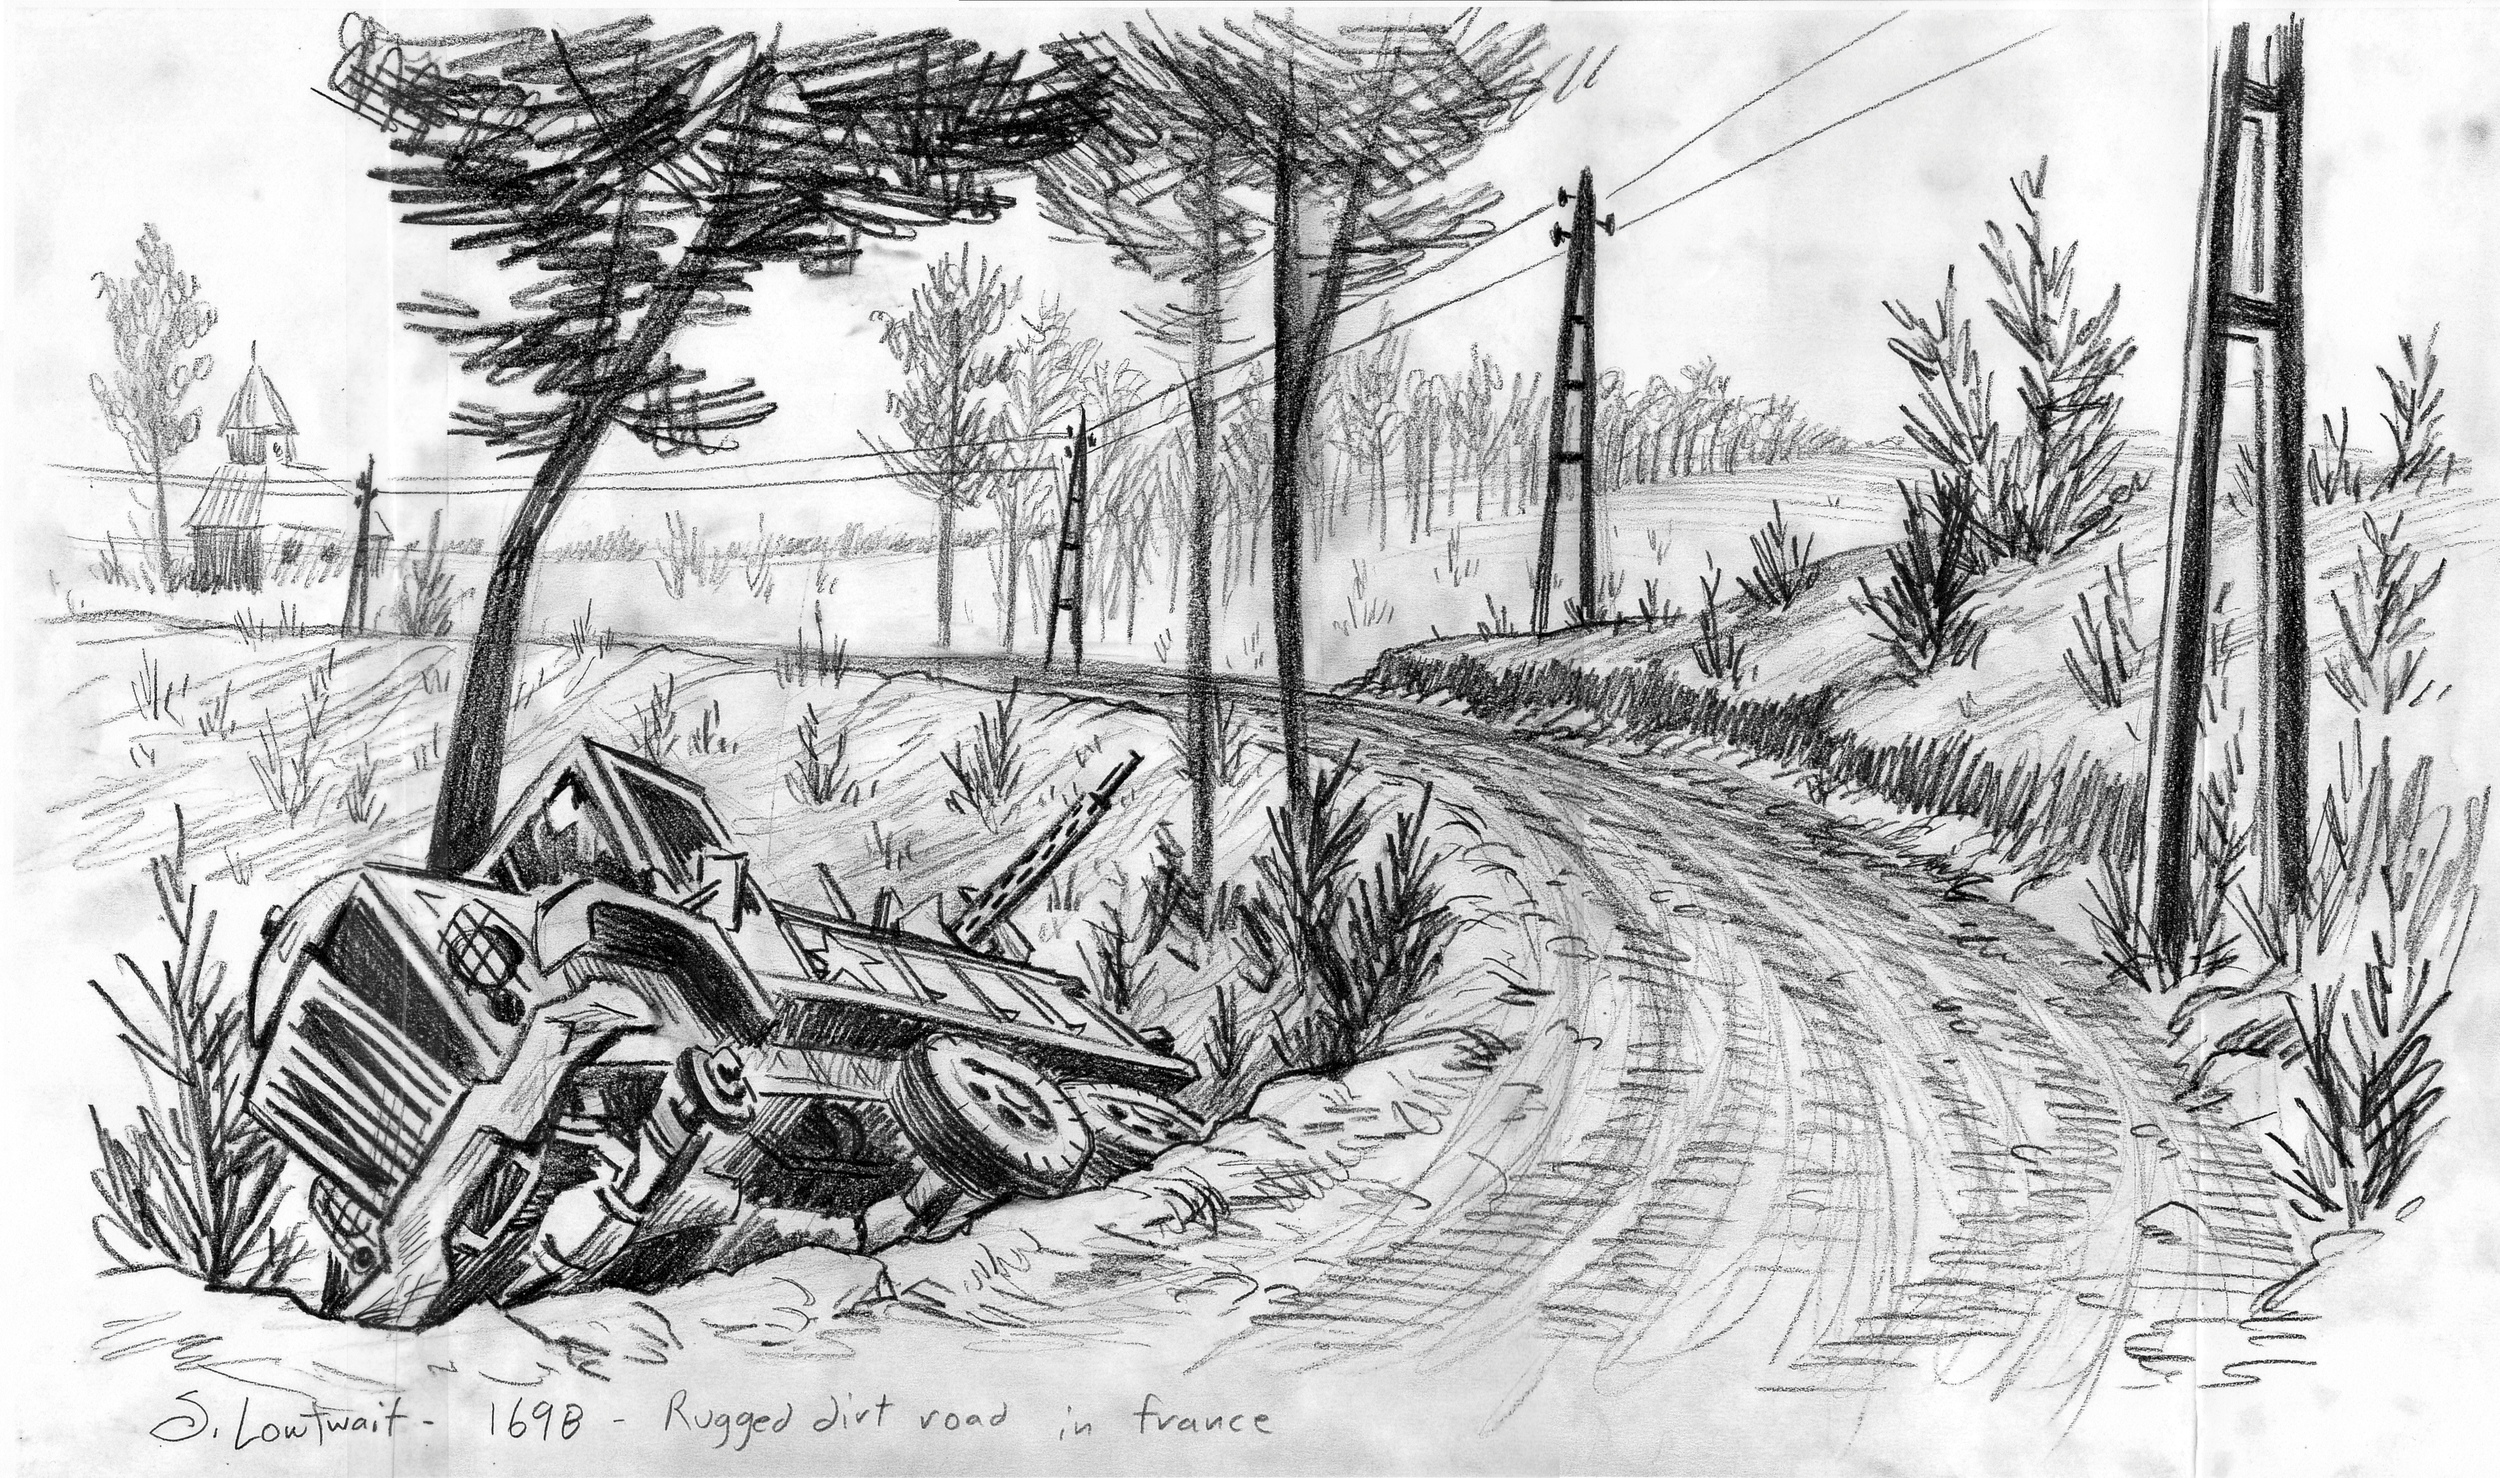 For this road in France during WWII, I researched what European power lines looked like in the 1940s.